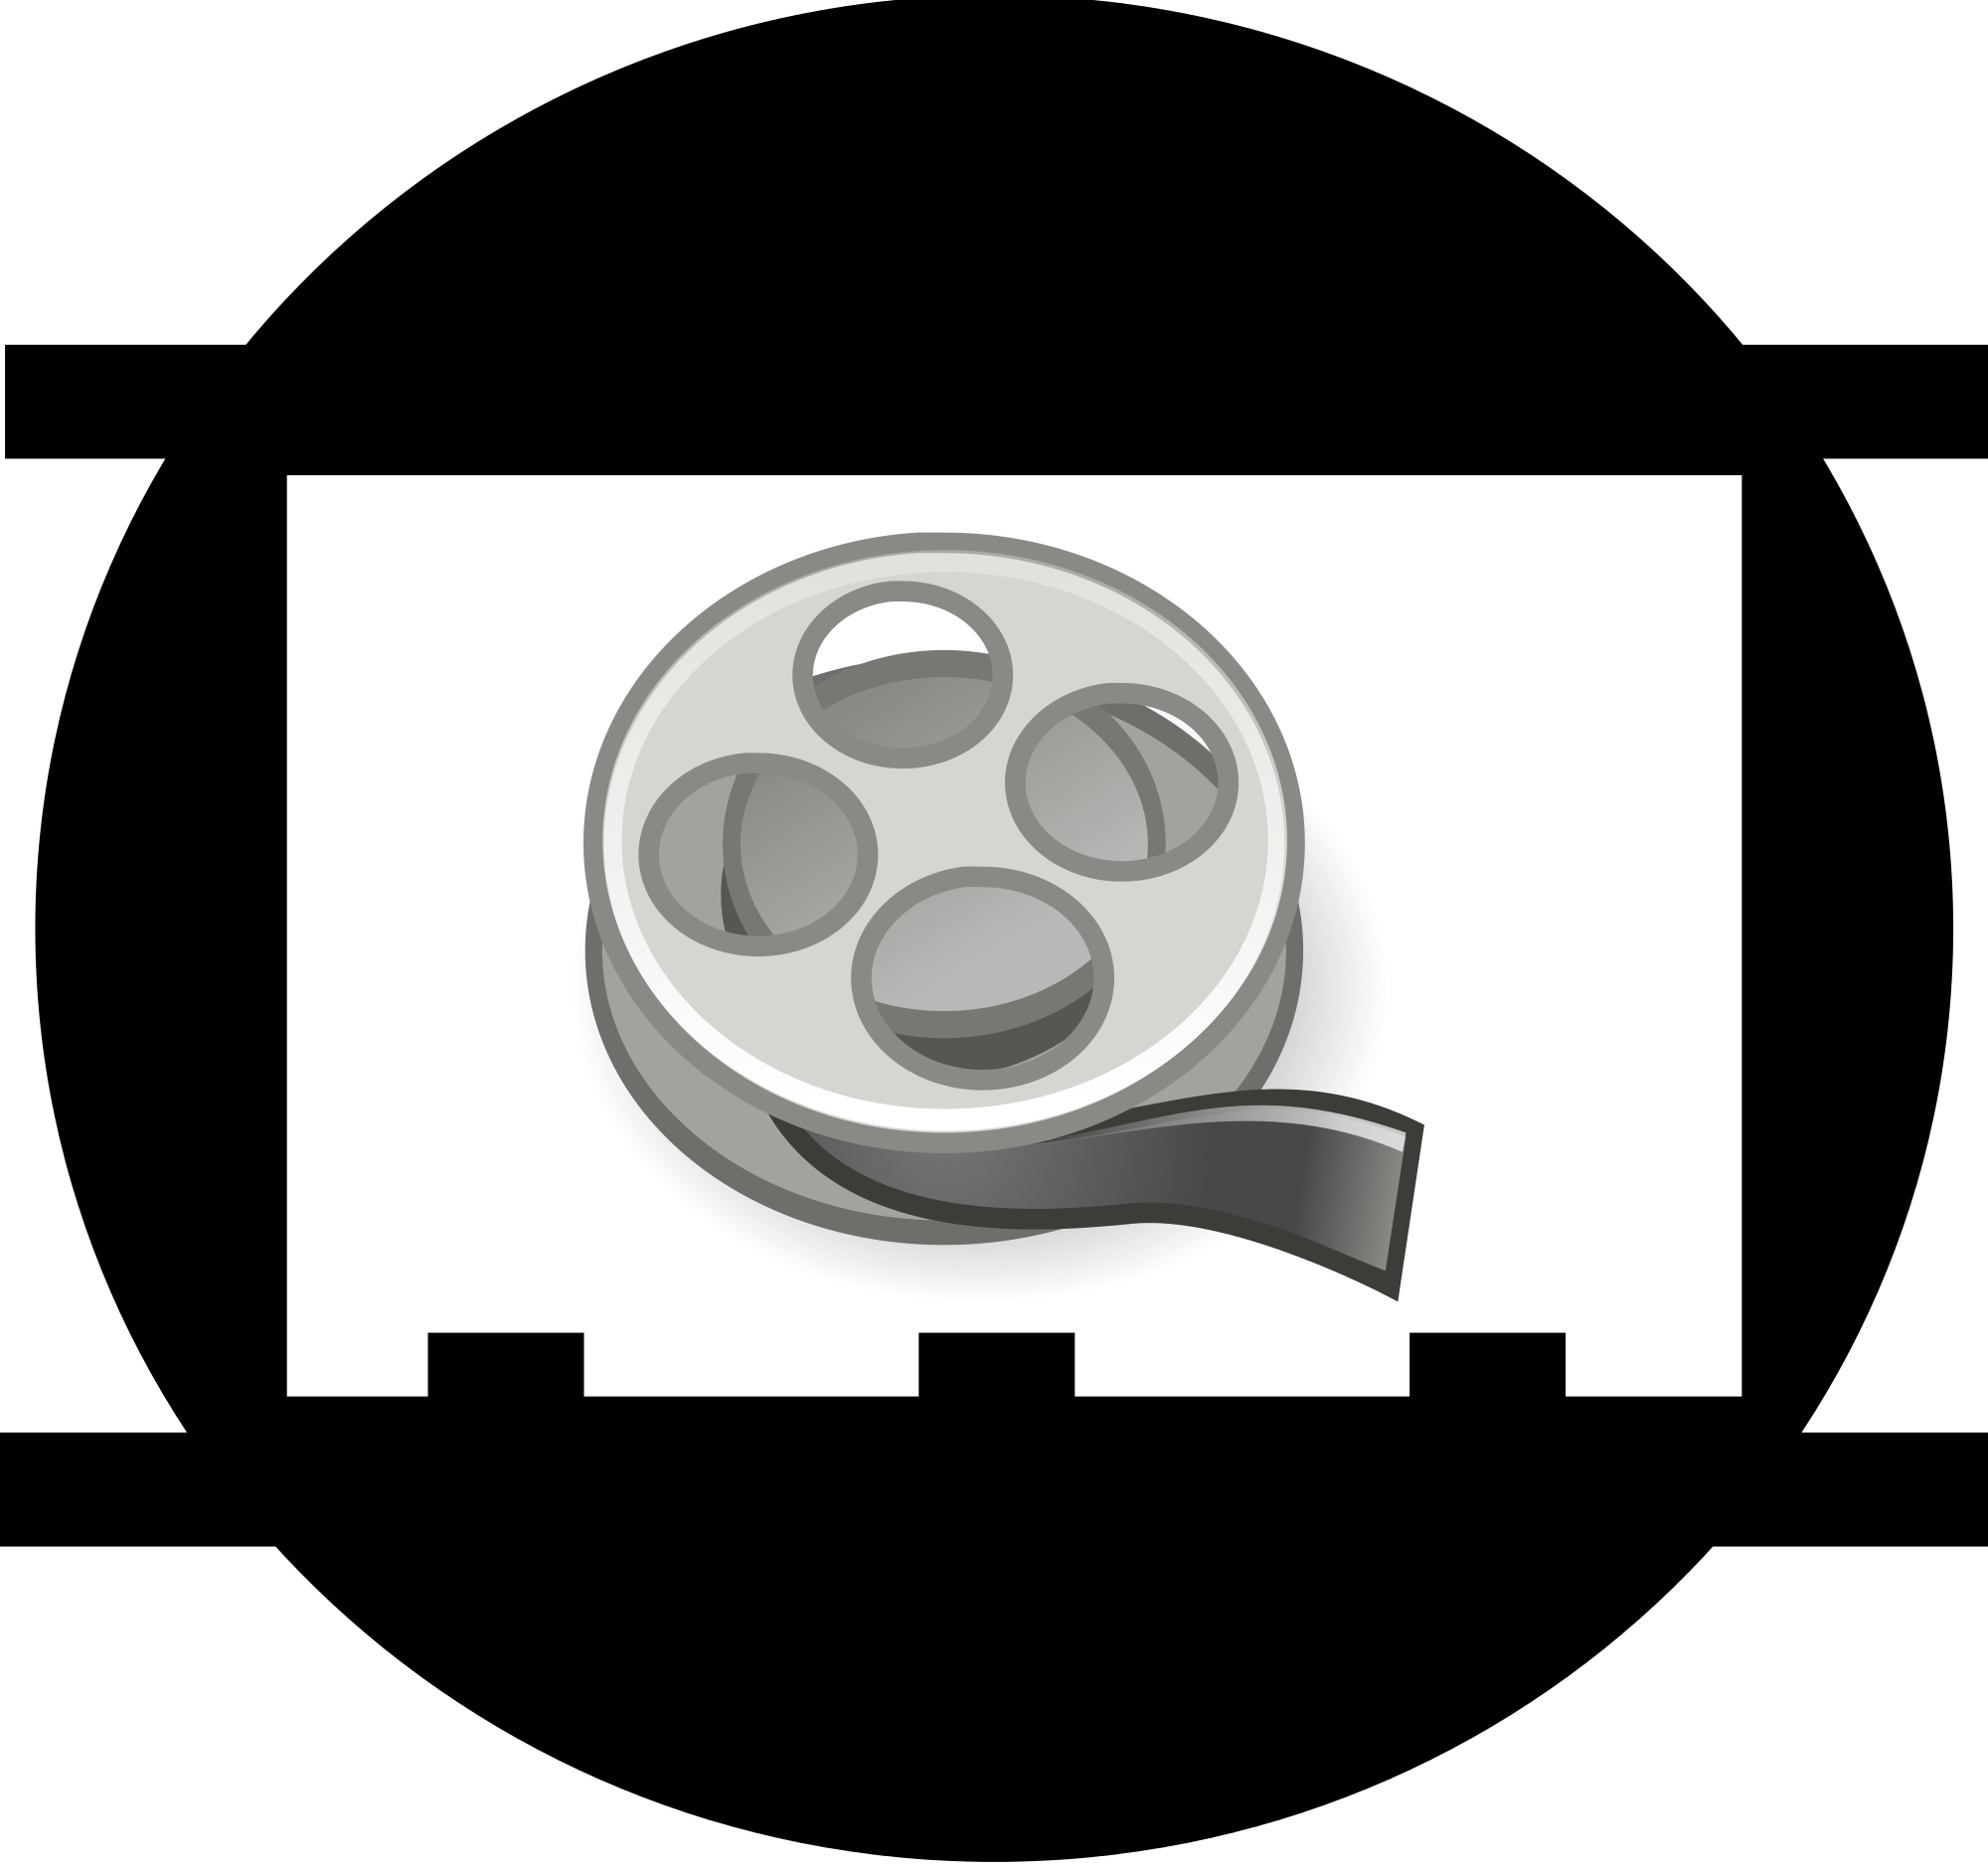 Movie clipart animated. New free film and